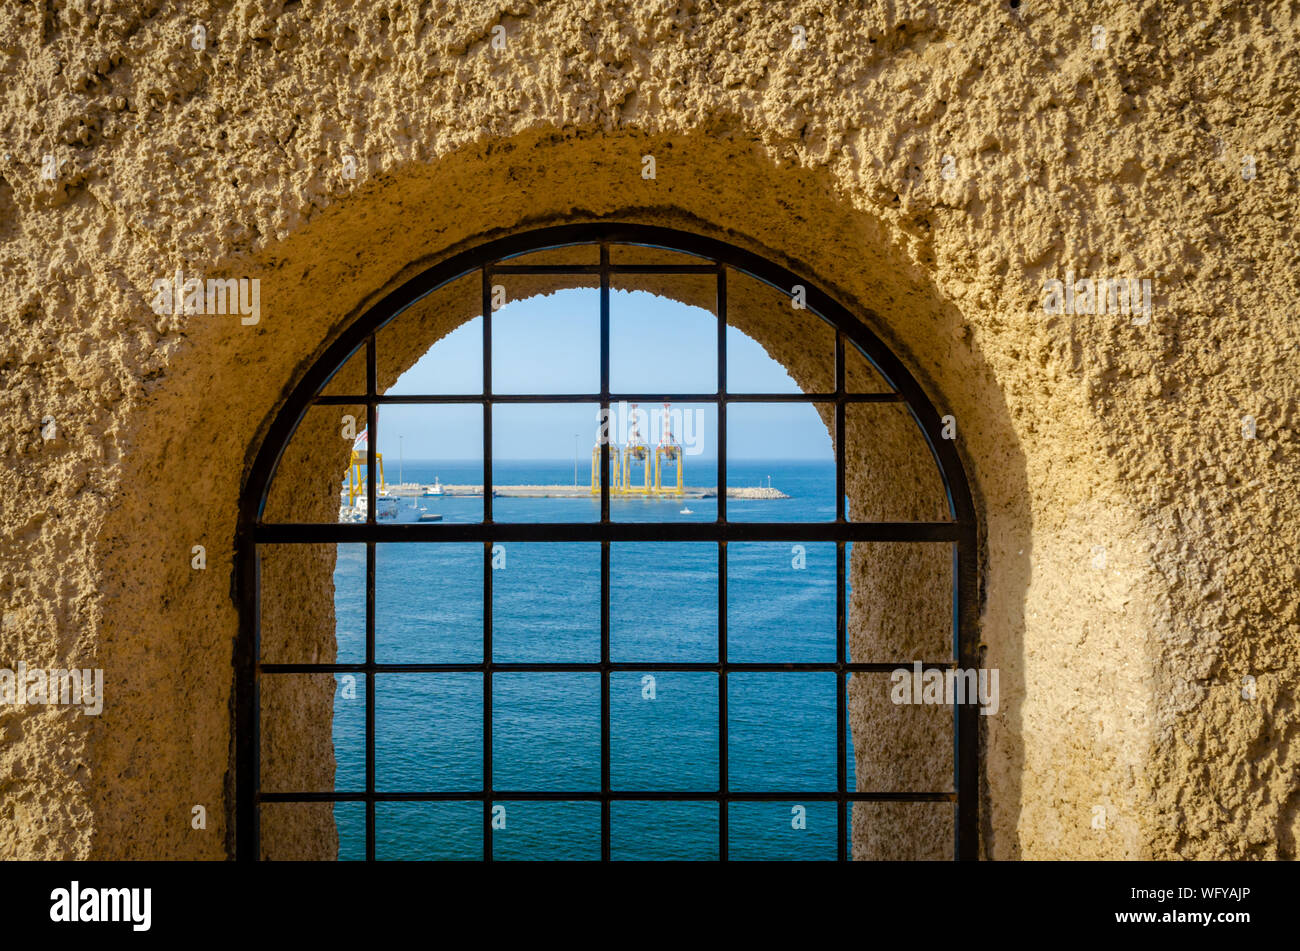 View of the sea and the port through a trap door barricaded with iron bars from the heights of the Muttrah Fort. From Muscat, Oman. Stock Photo